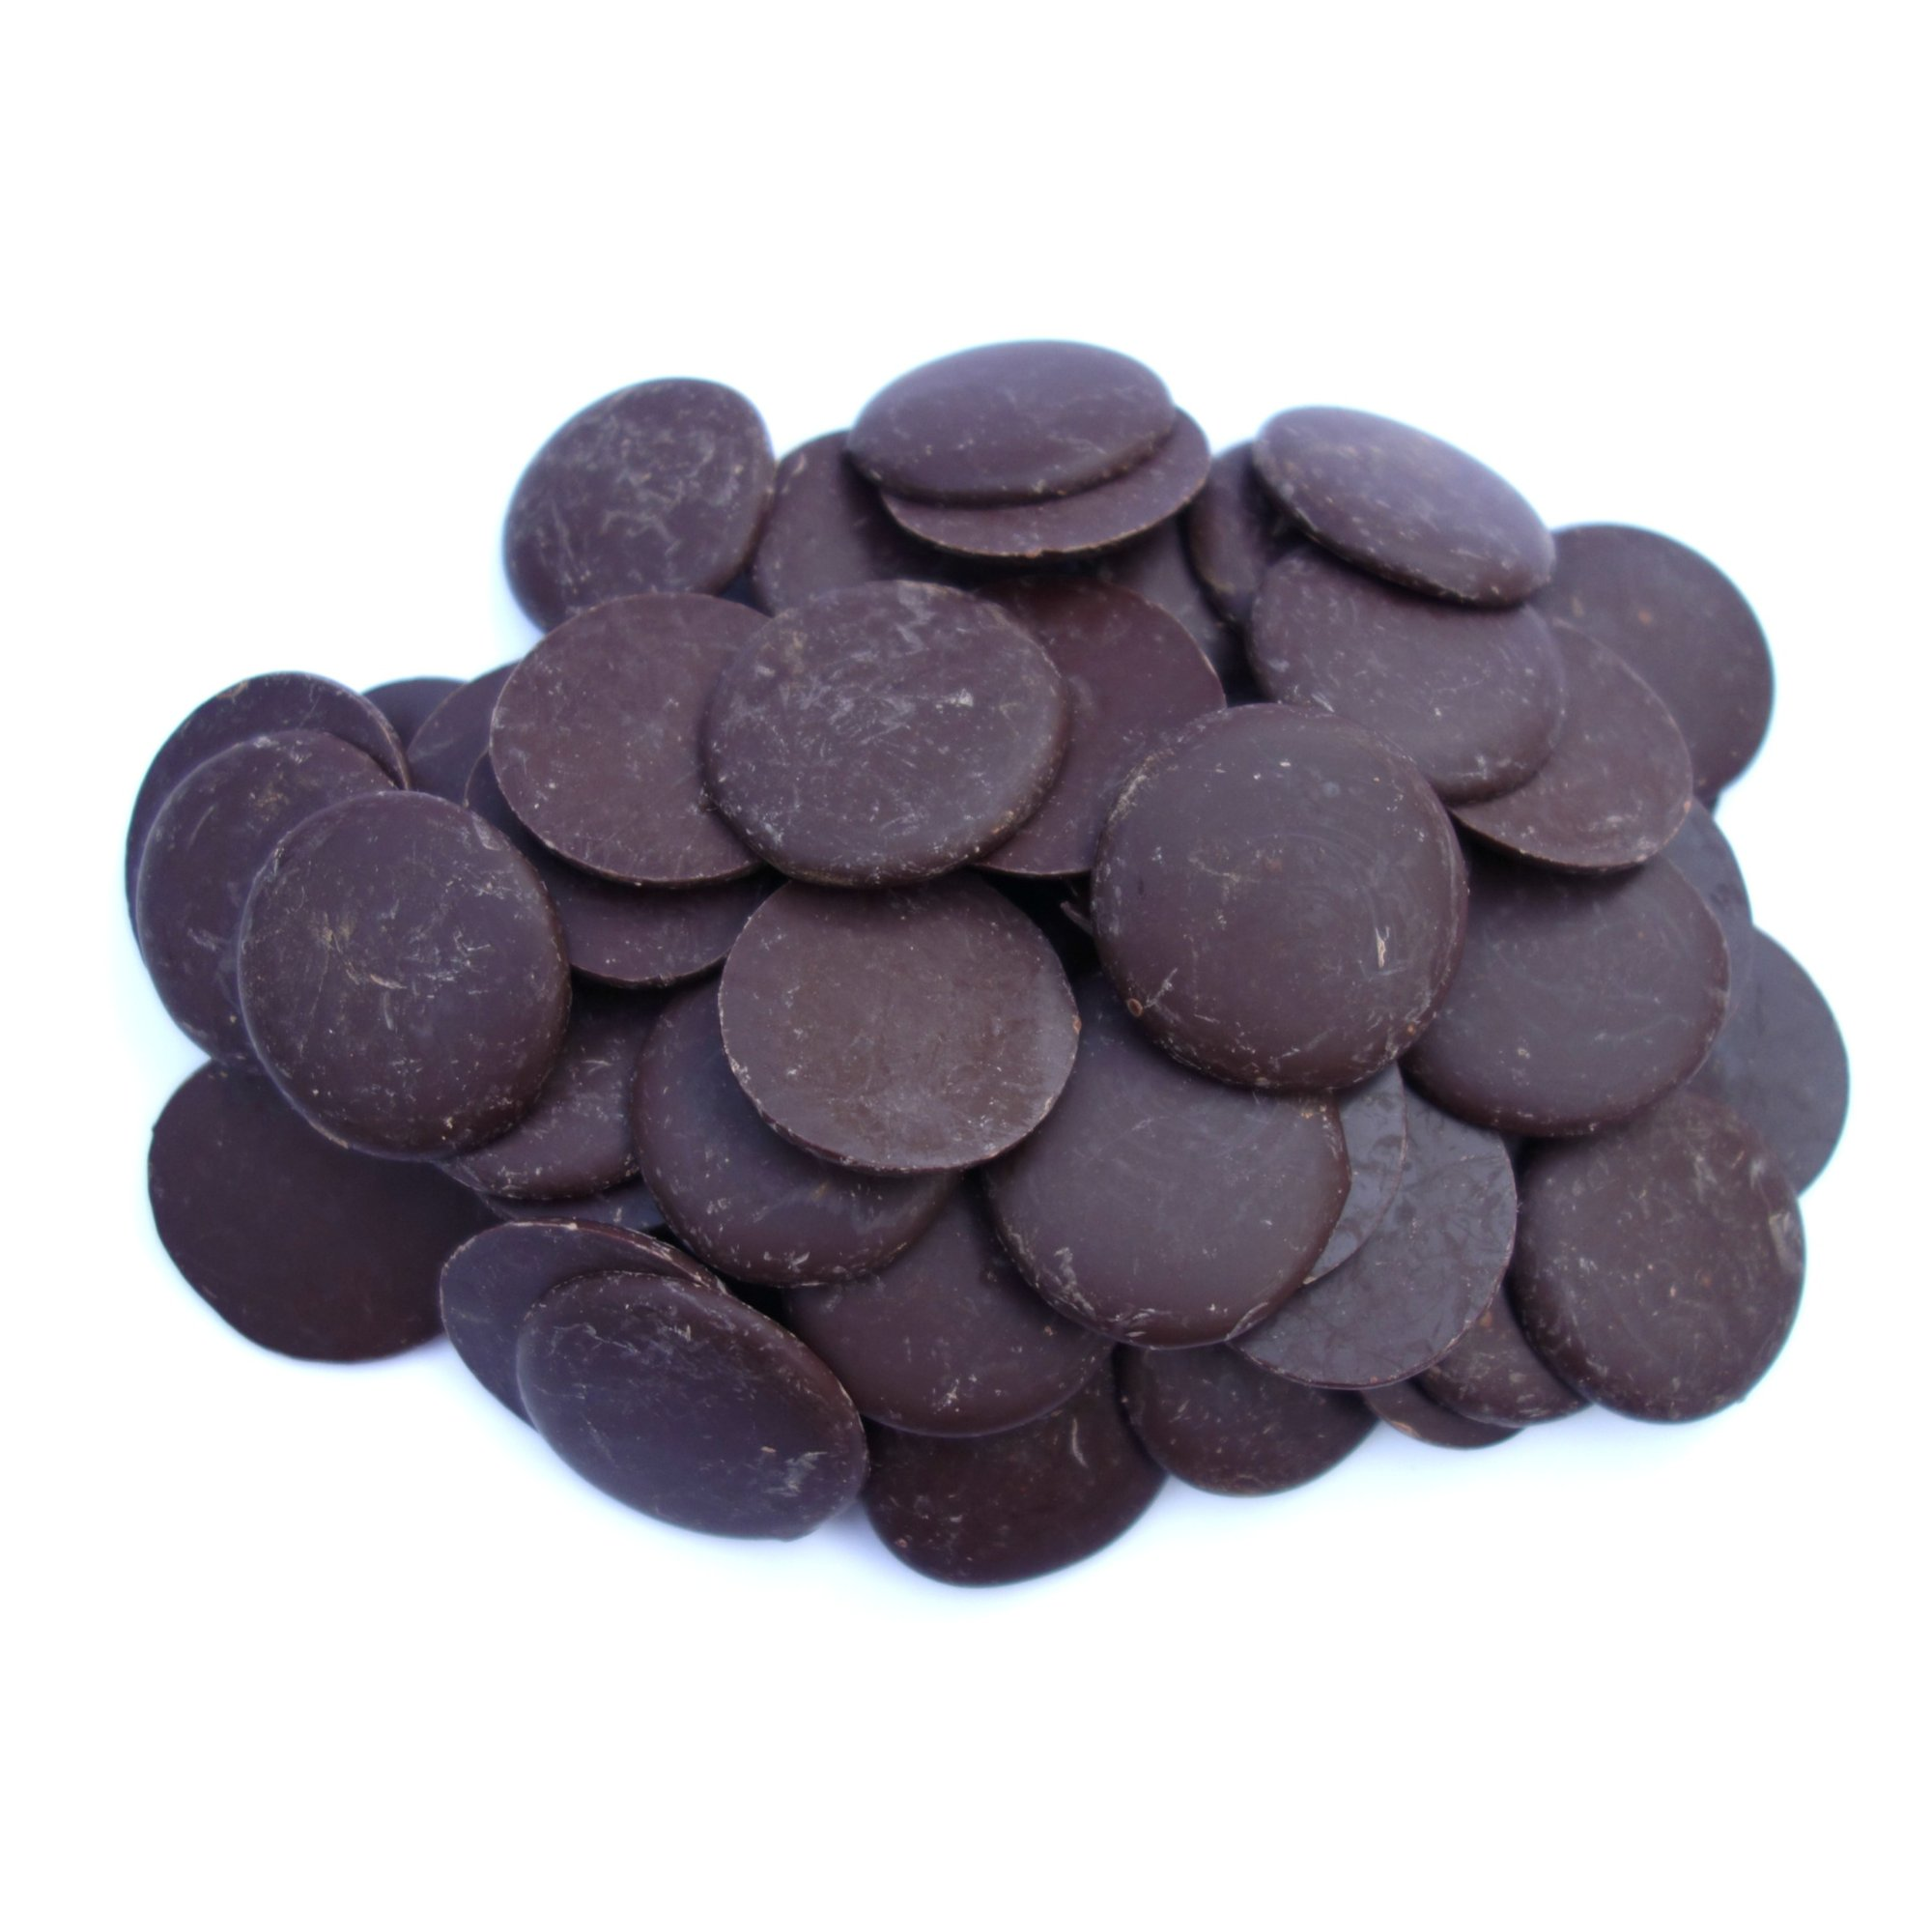 Mint 72% Dark Chocolate Buttons | Raw Chocolate Company